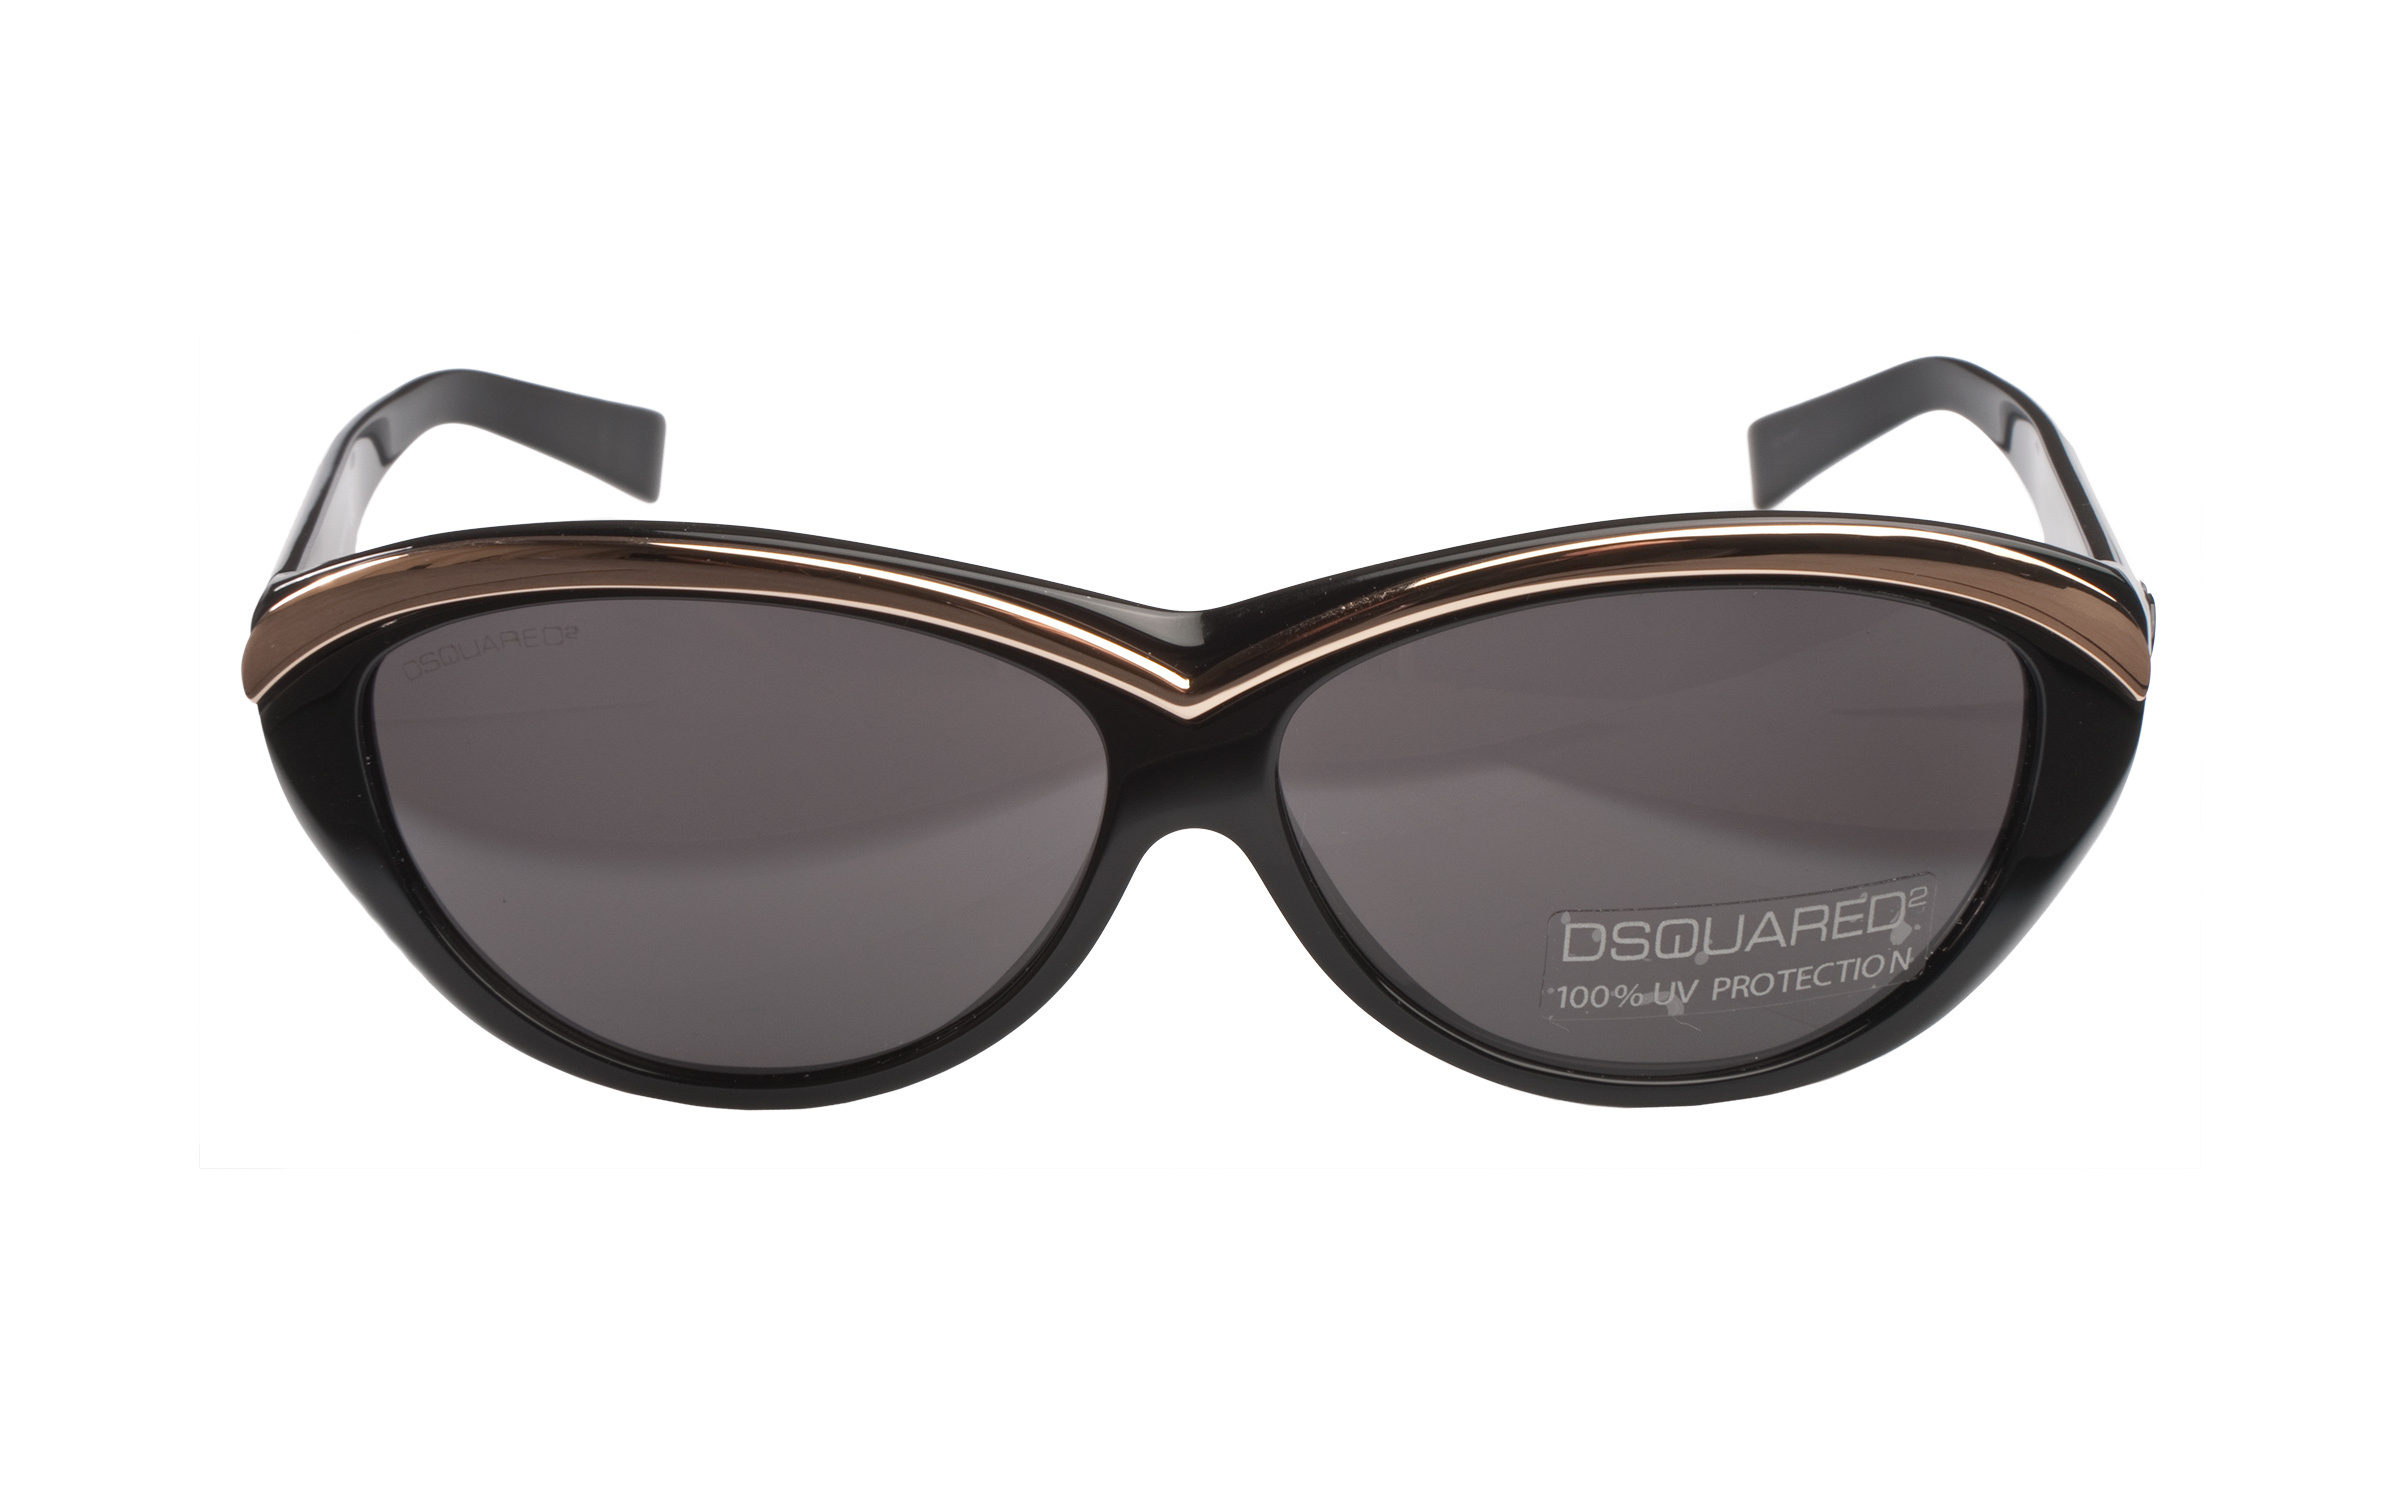 Dsquared_Sunglasses_CatEye_Black_Metal_Online_Coastal